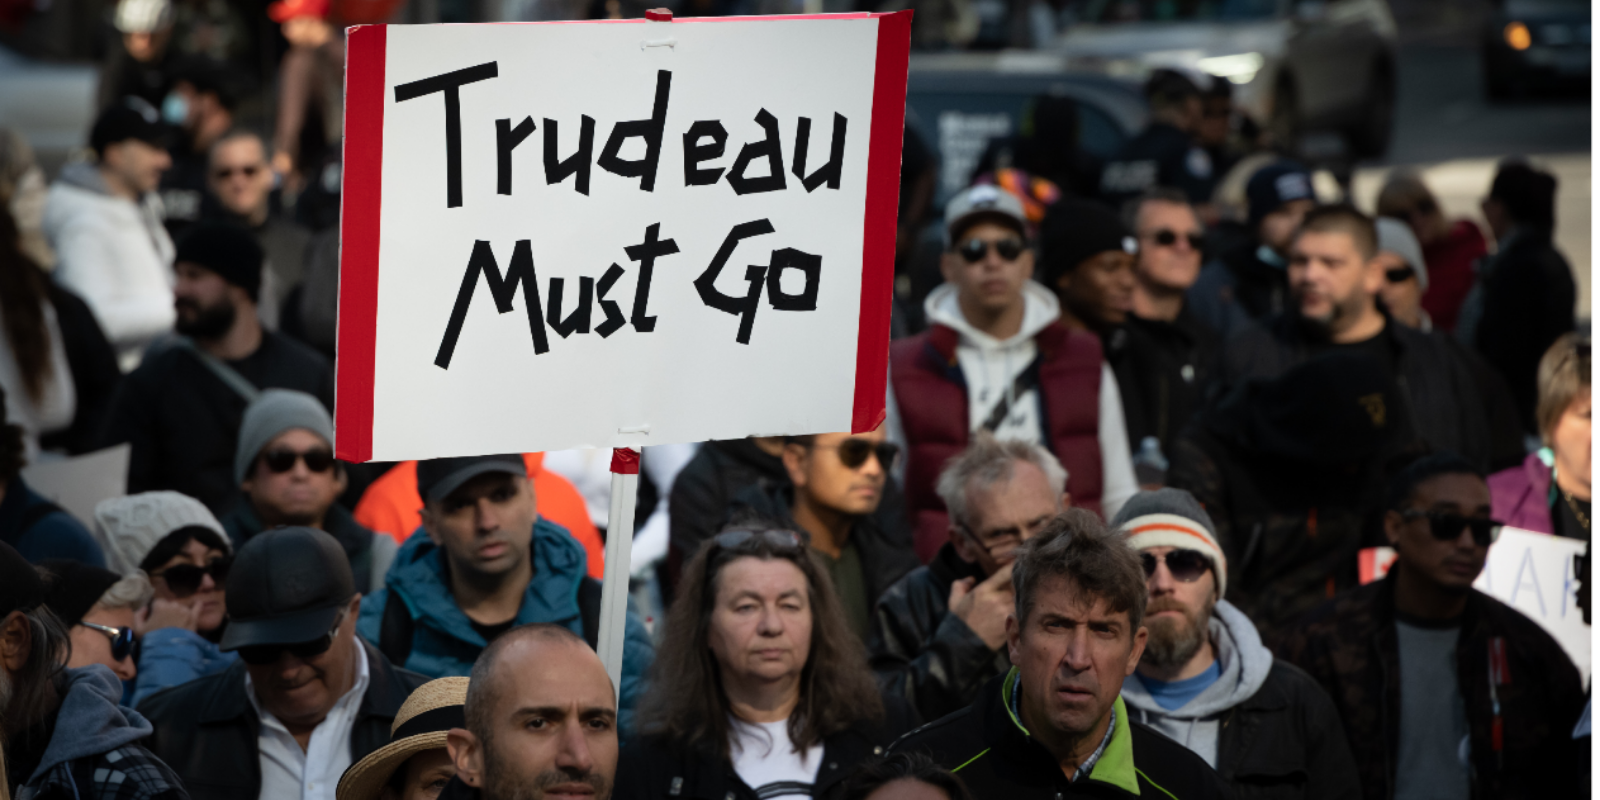 Over 50 percent of Canadians want Trudeau gone: poll